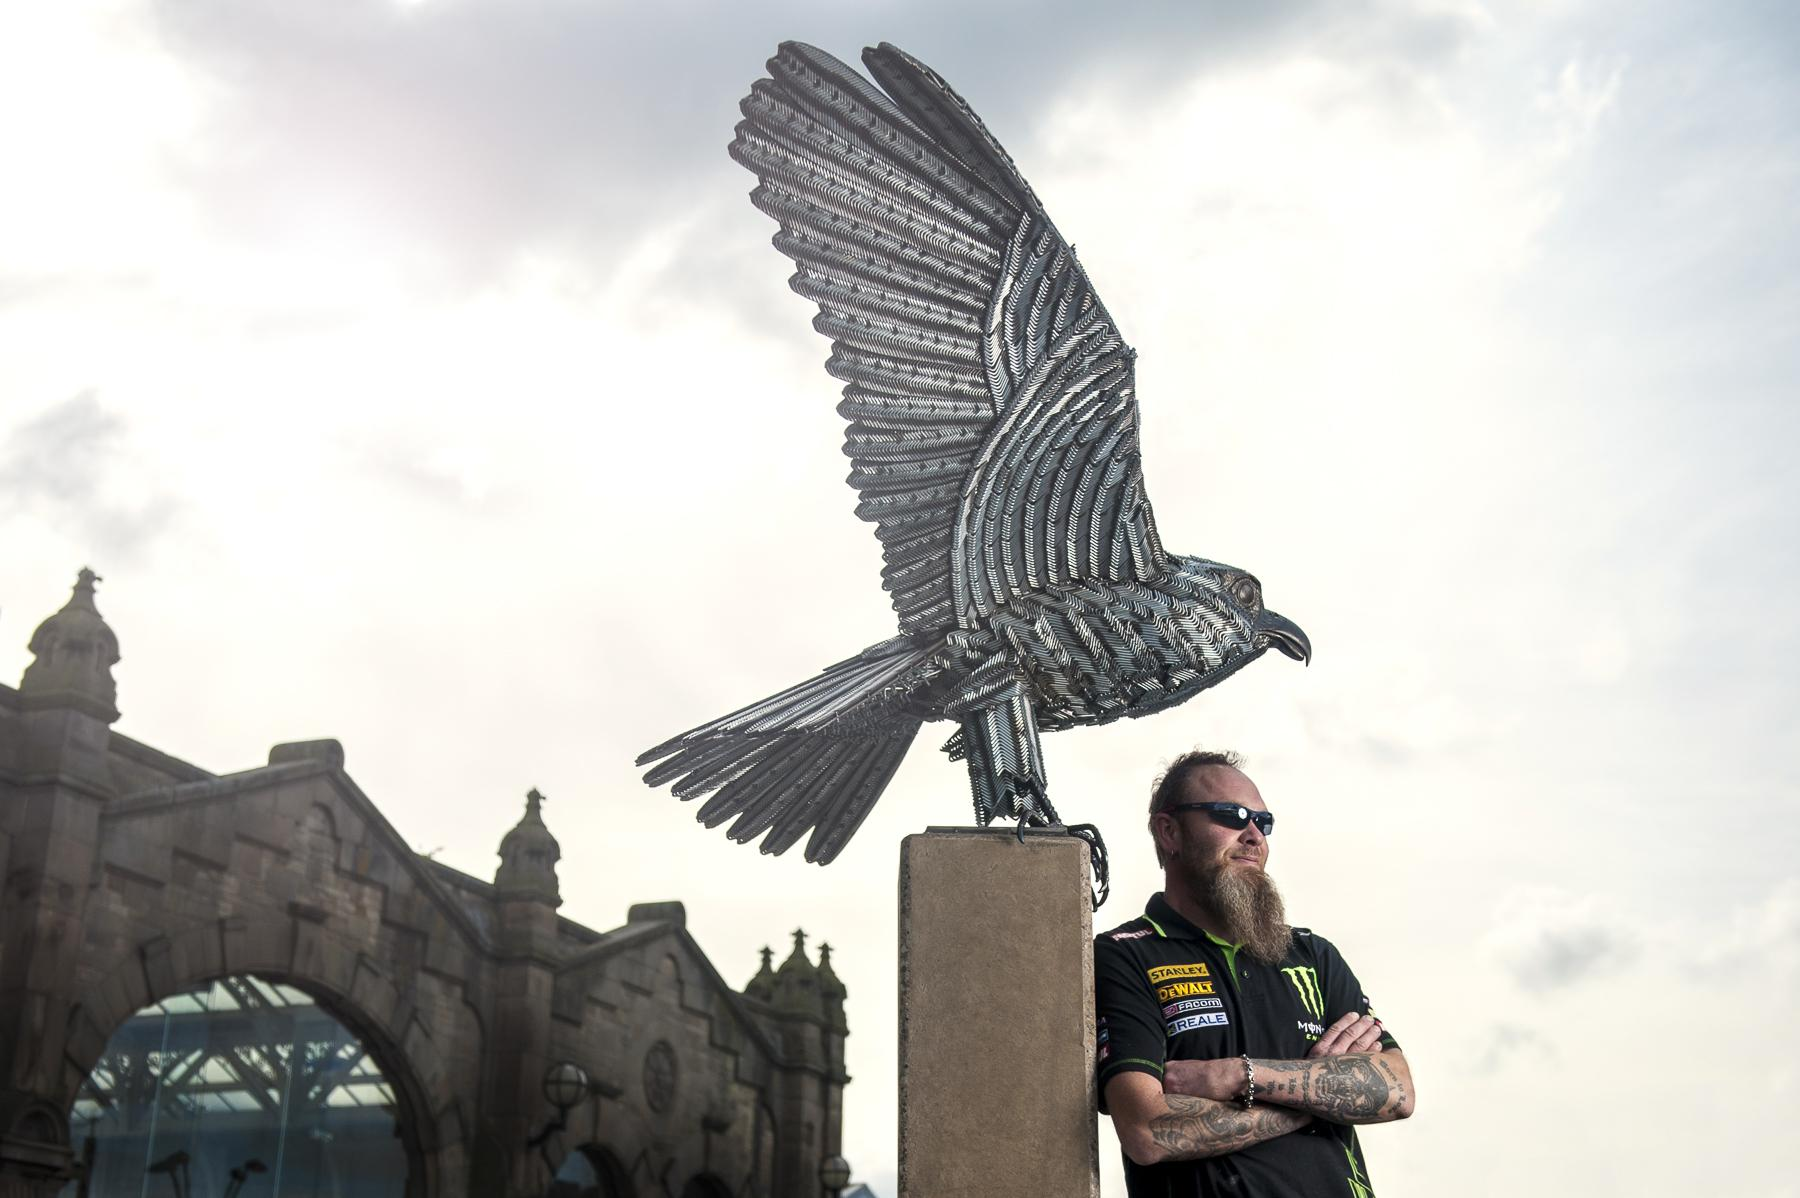 IKEA Ambient Ad - Allen the Peregrine